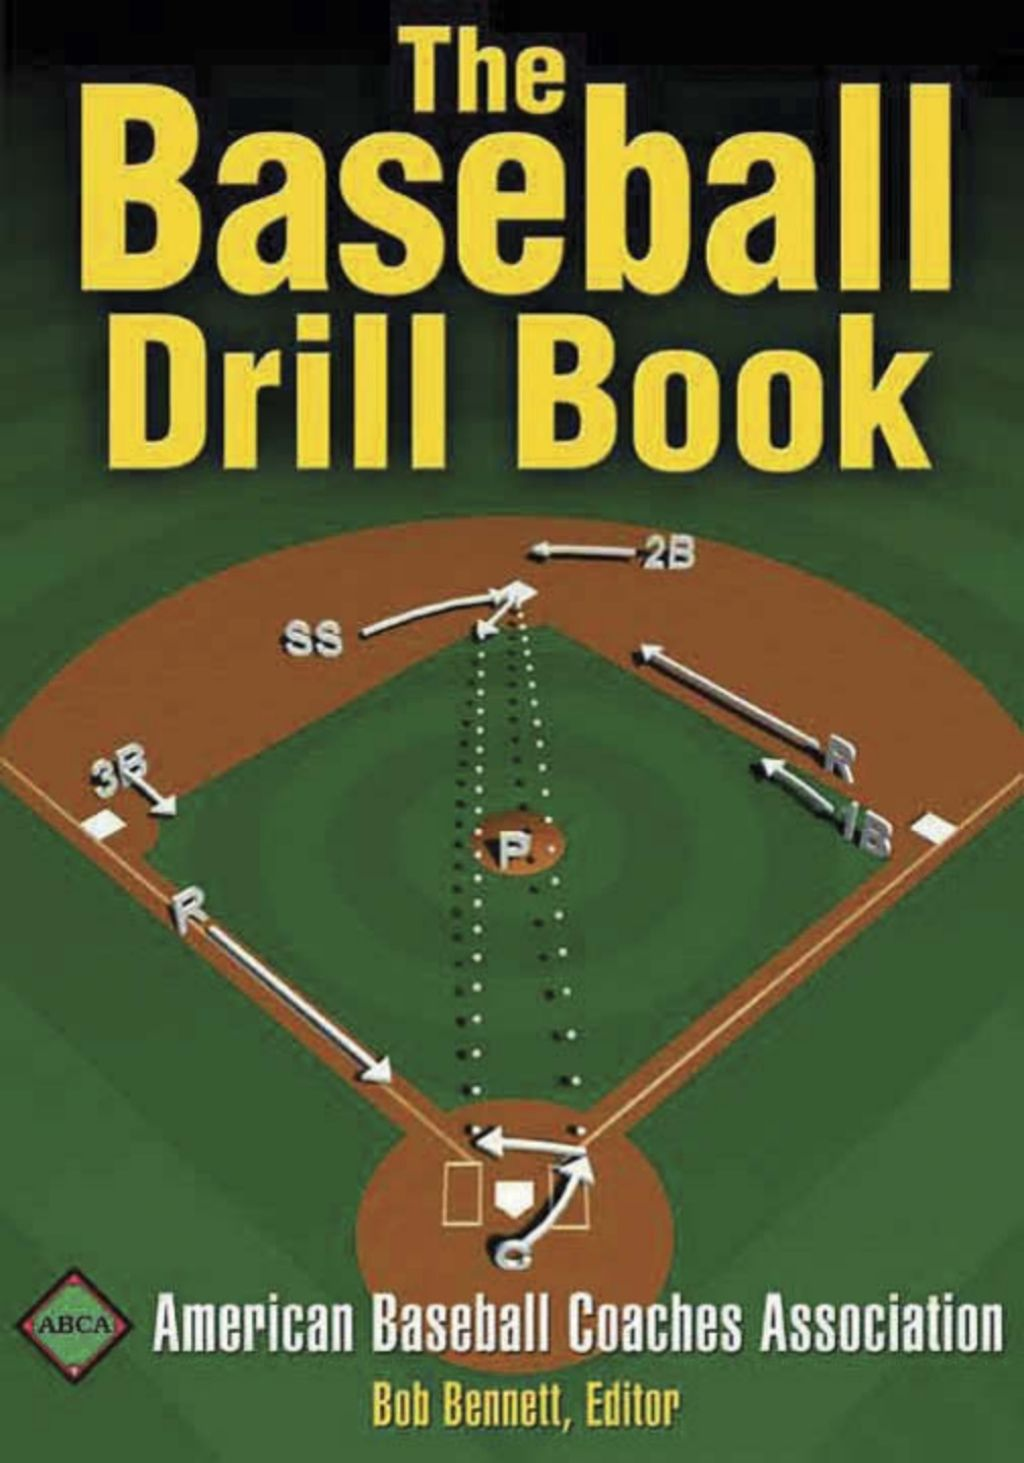 Baseball Drill Book The Ebook Rental In 2020 Baseball Drills Baseball Coach Baseball